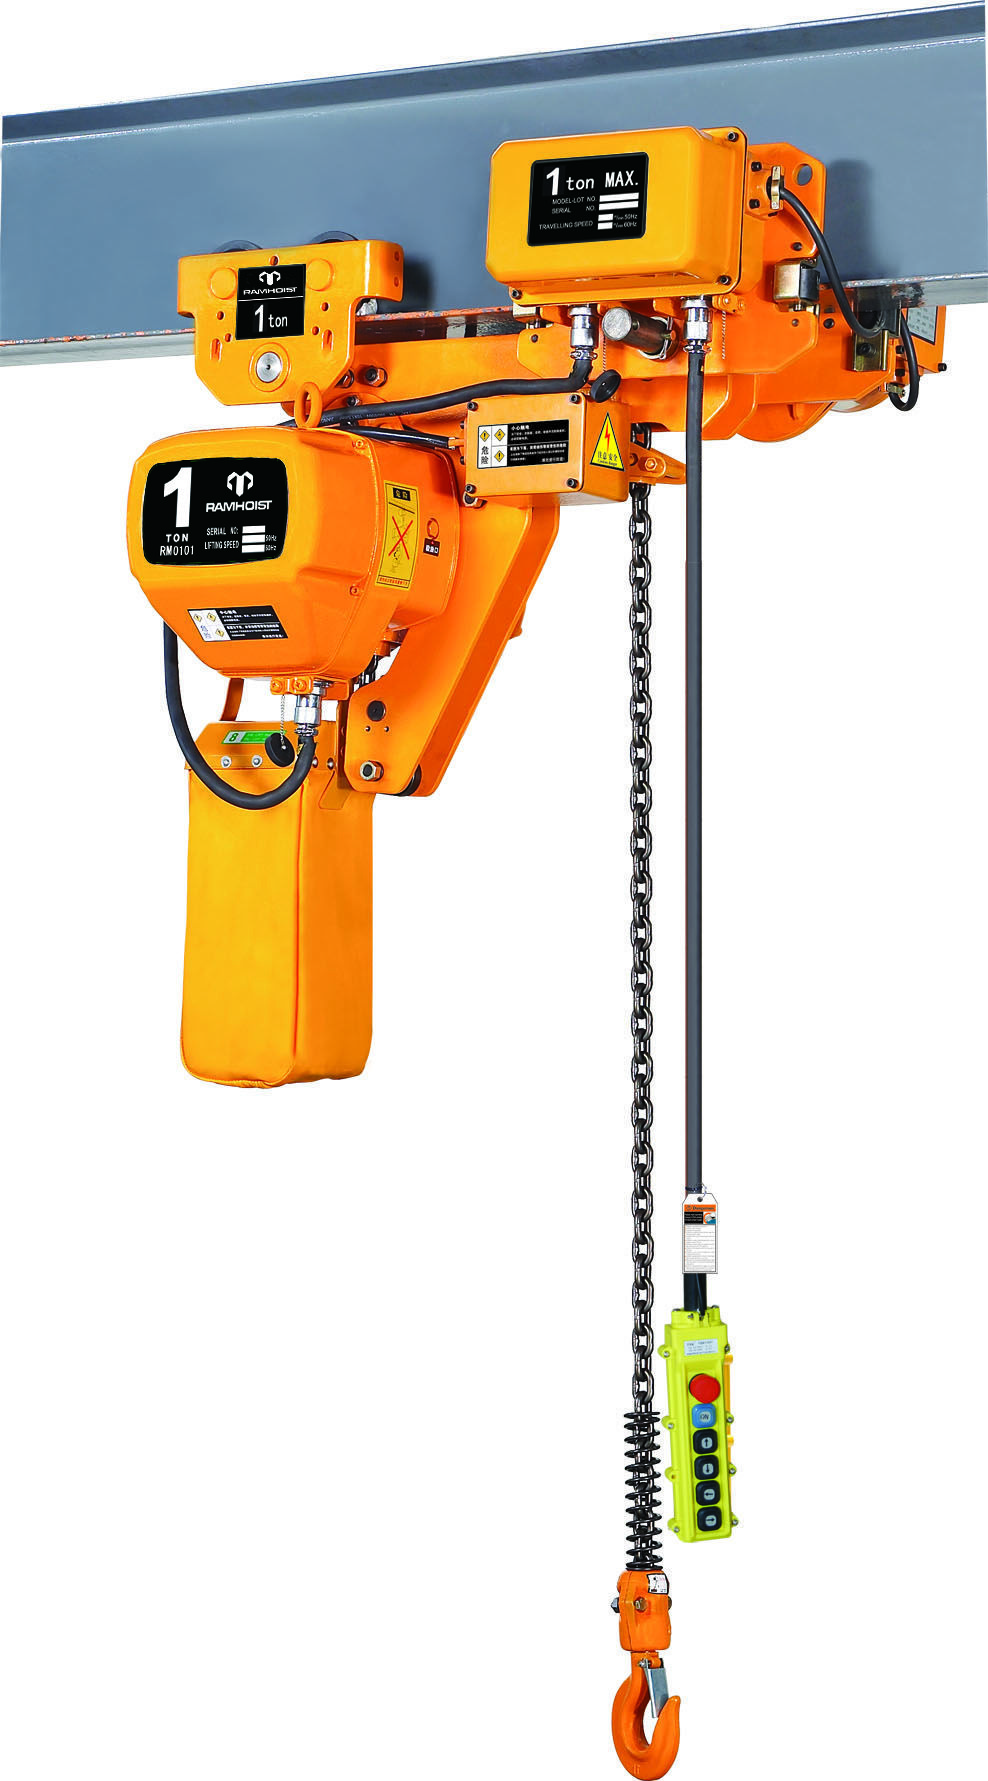 Heavy Duty 2 Ton Jet Manual Chain Fall 10 Ft Lift Hoist Puller Smh 2t 10 101712 Lifts Hoists Hoist Heavy Duty